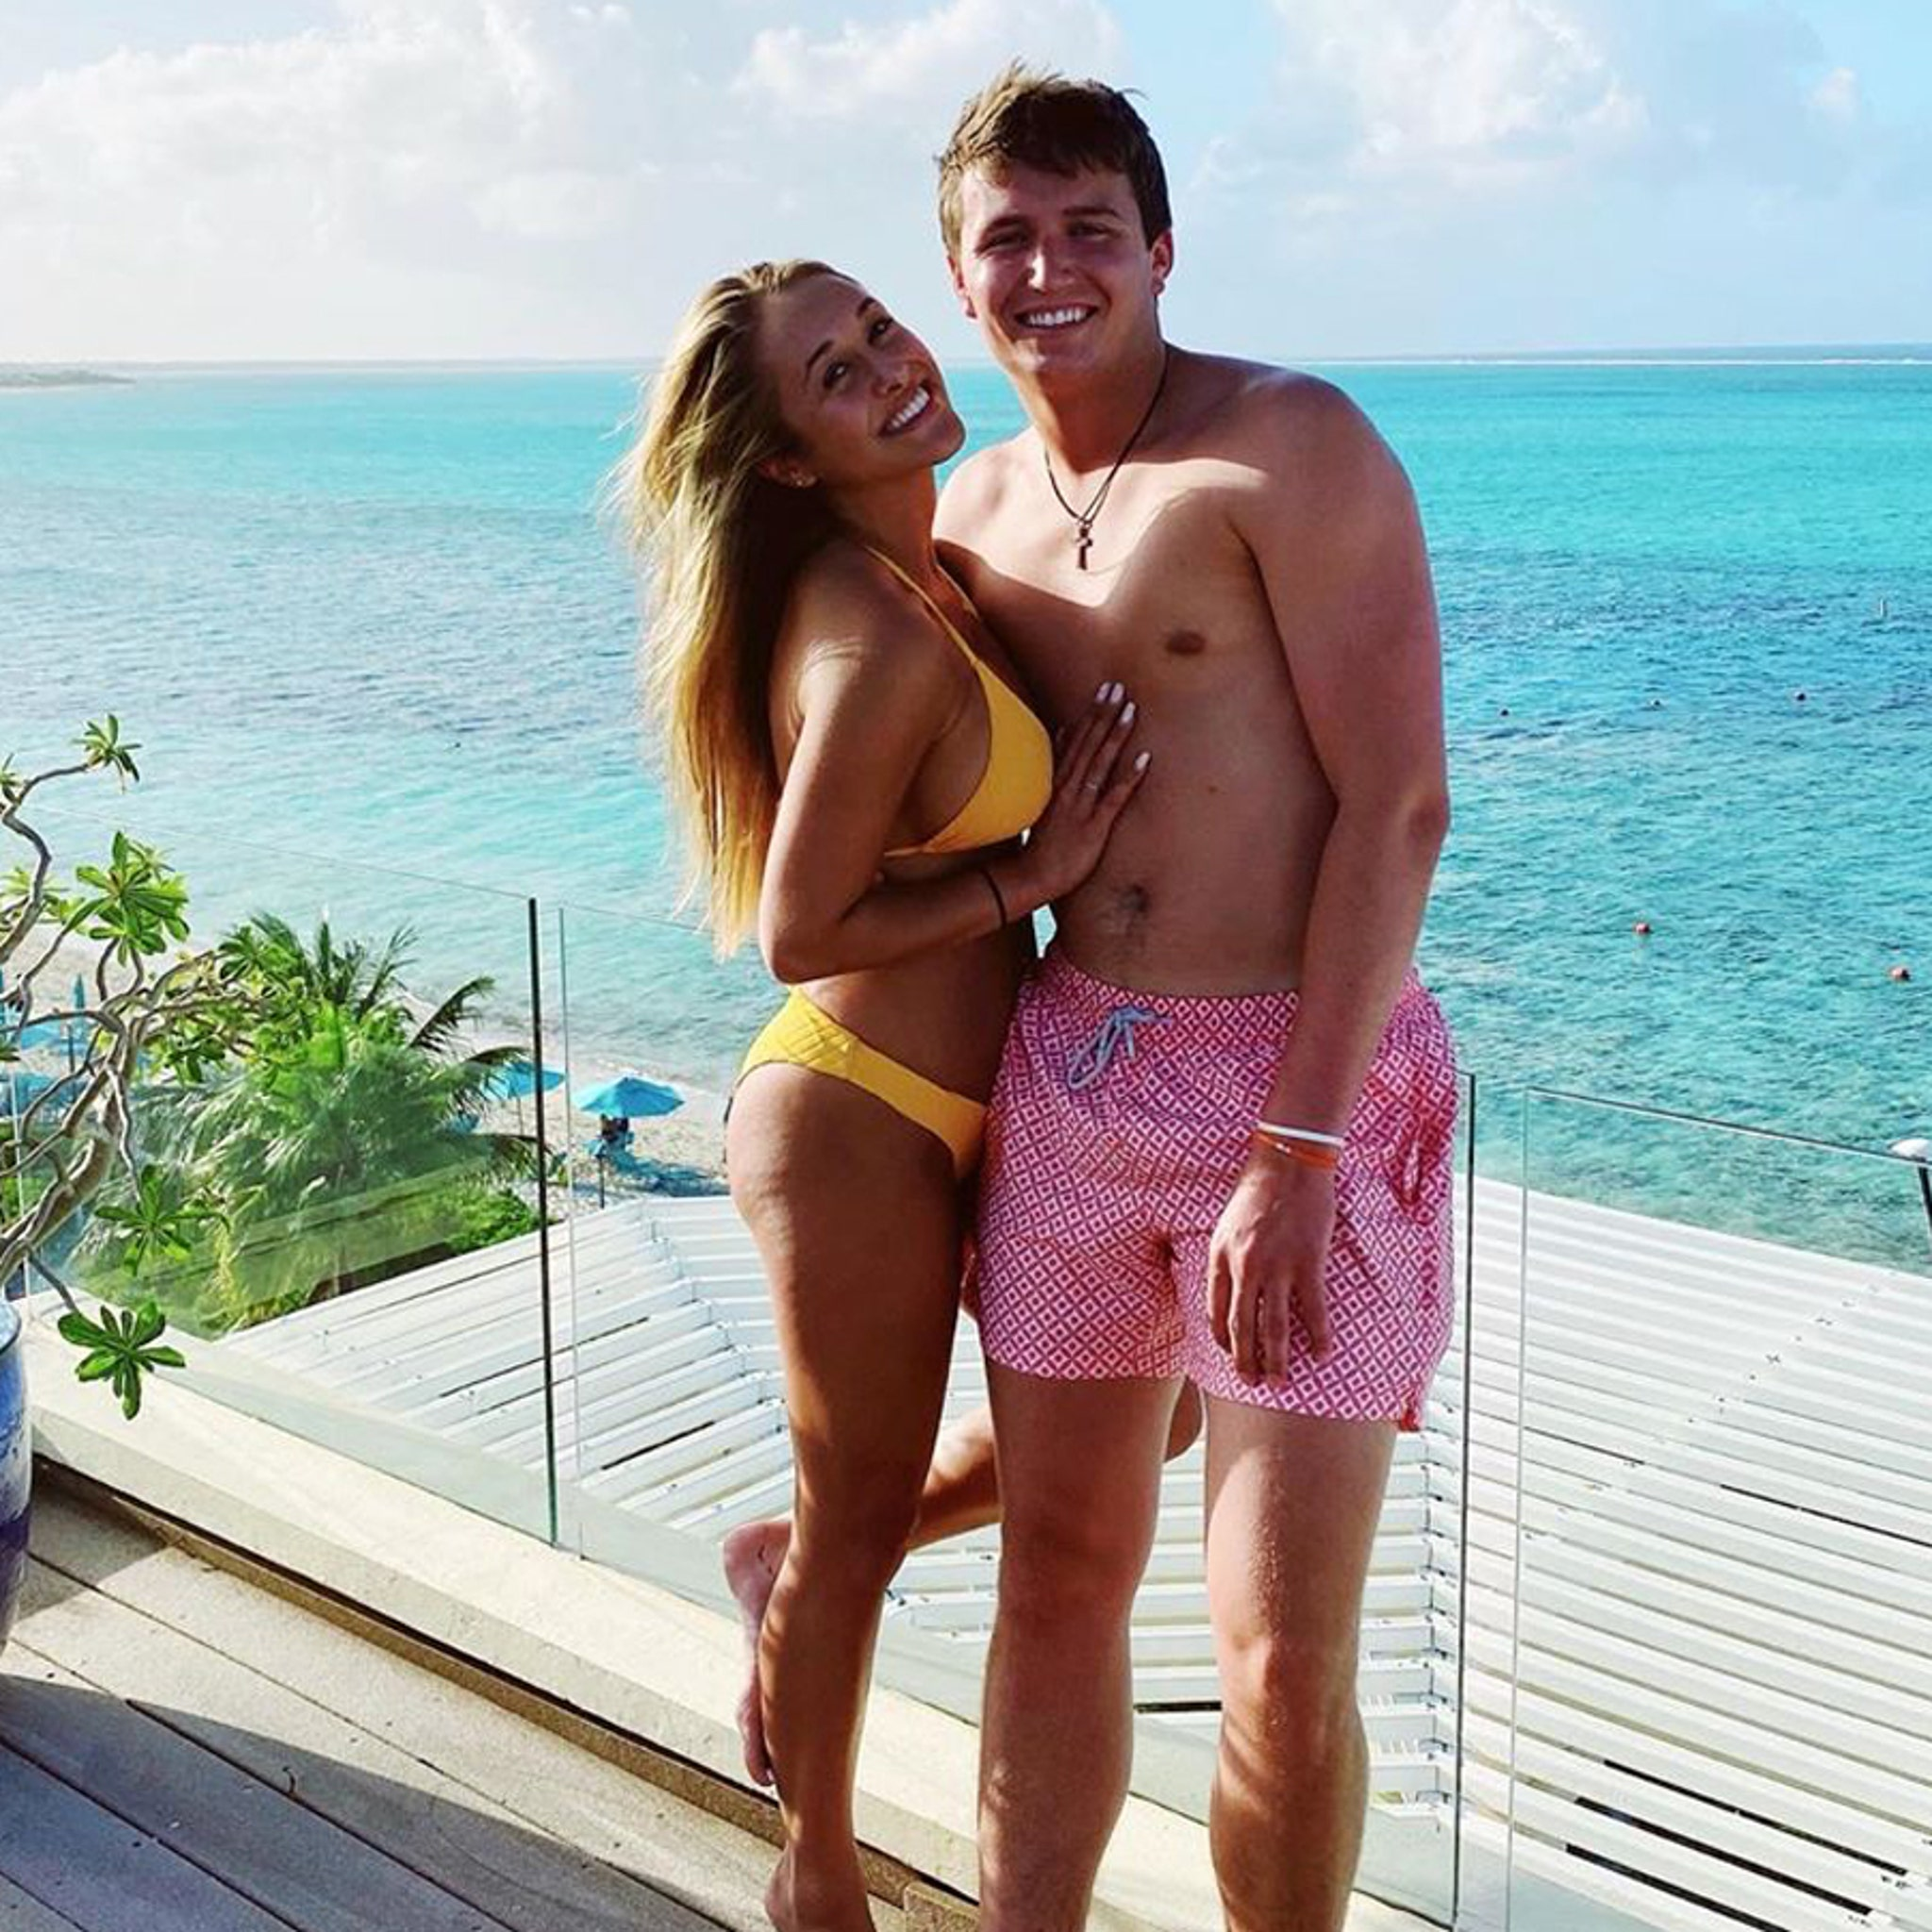 Drew Lock Rocks Pink Short Shorts On Baecation With GF in Bikini